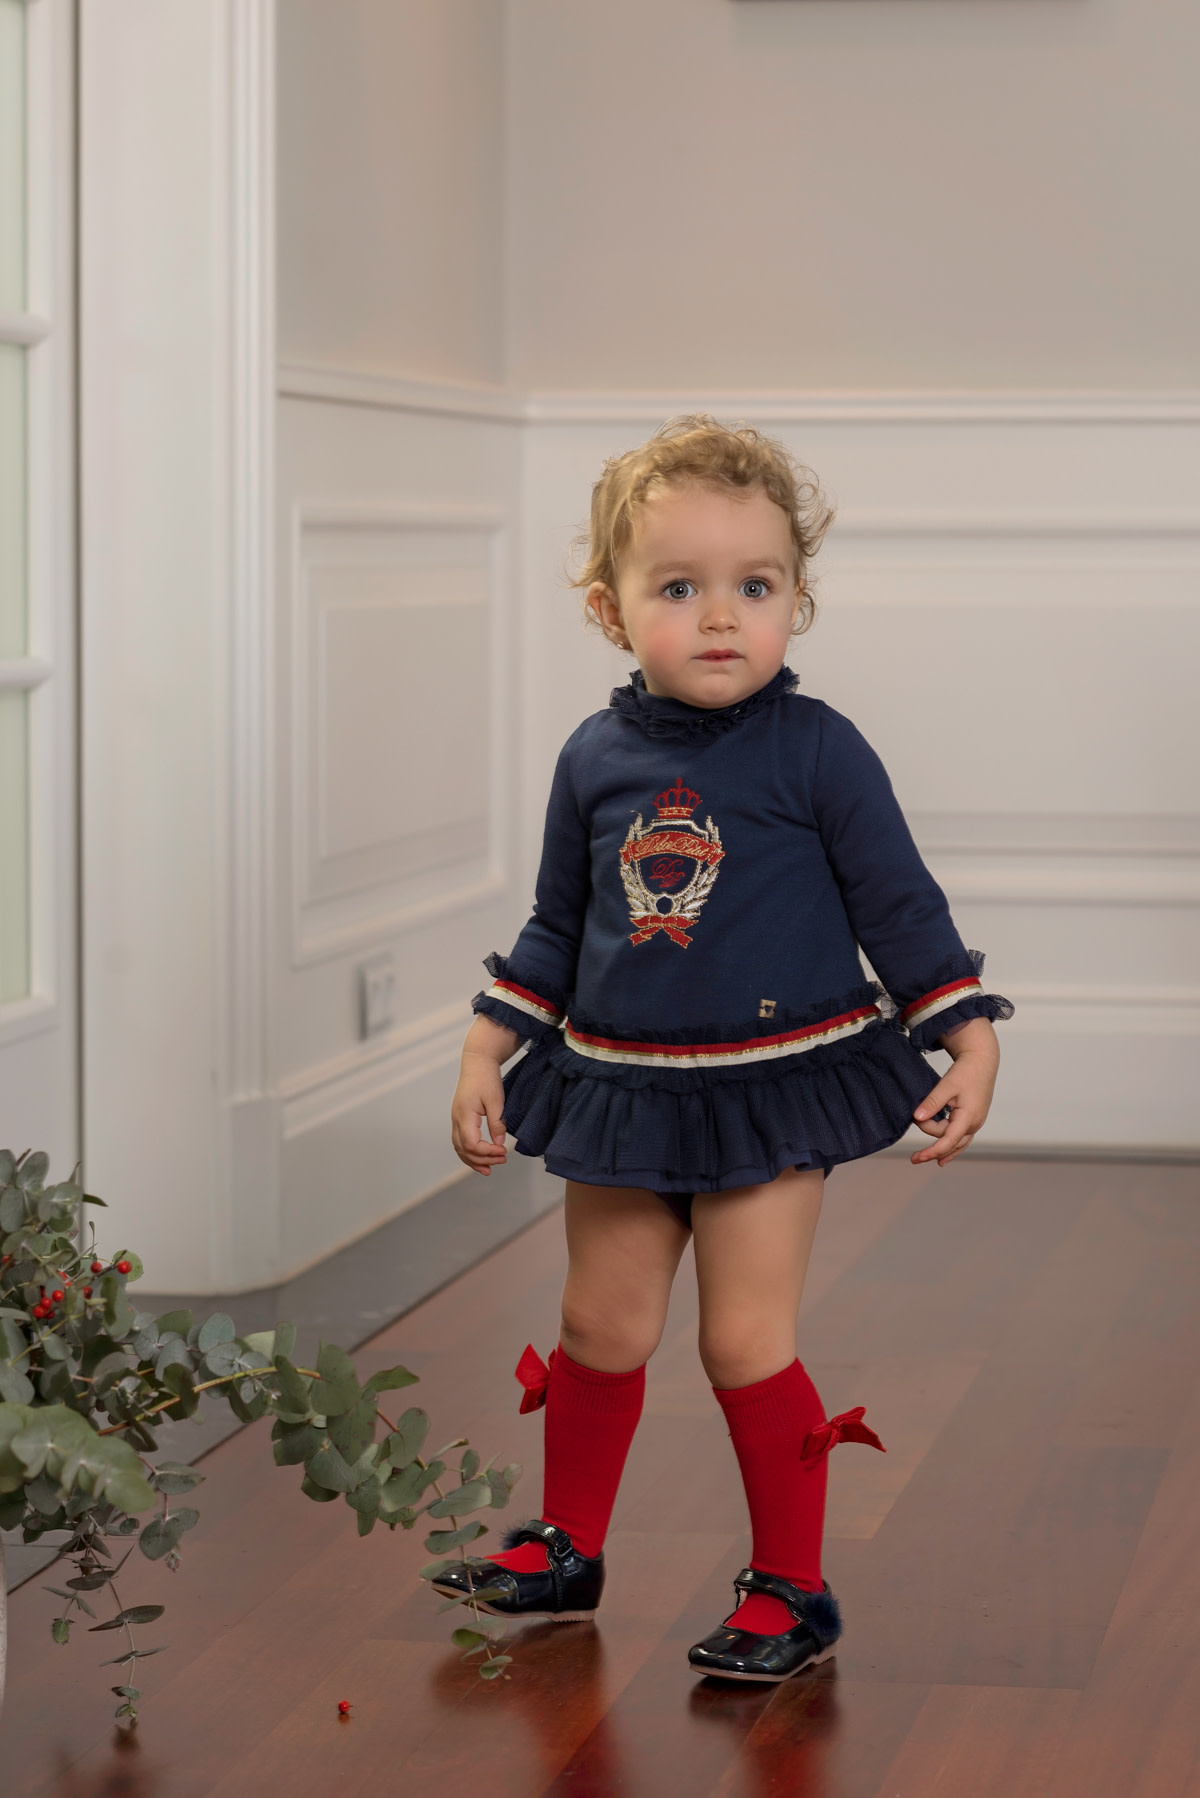 Dolce Petit Dolce Petit AW19 Girls Navy Dress with Red and Gold Trim  2112/VB 24 Months